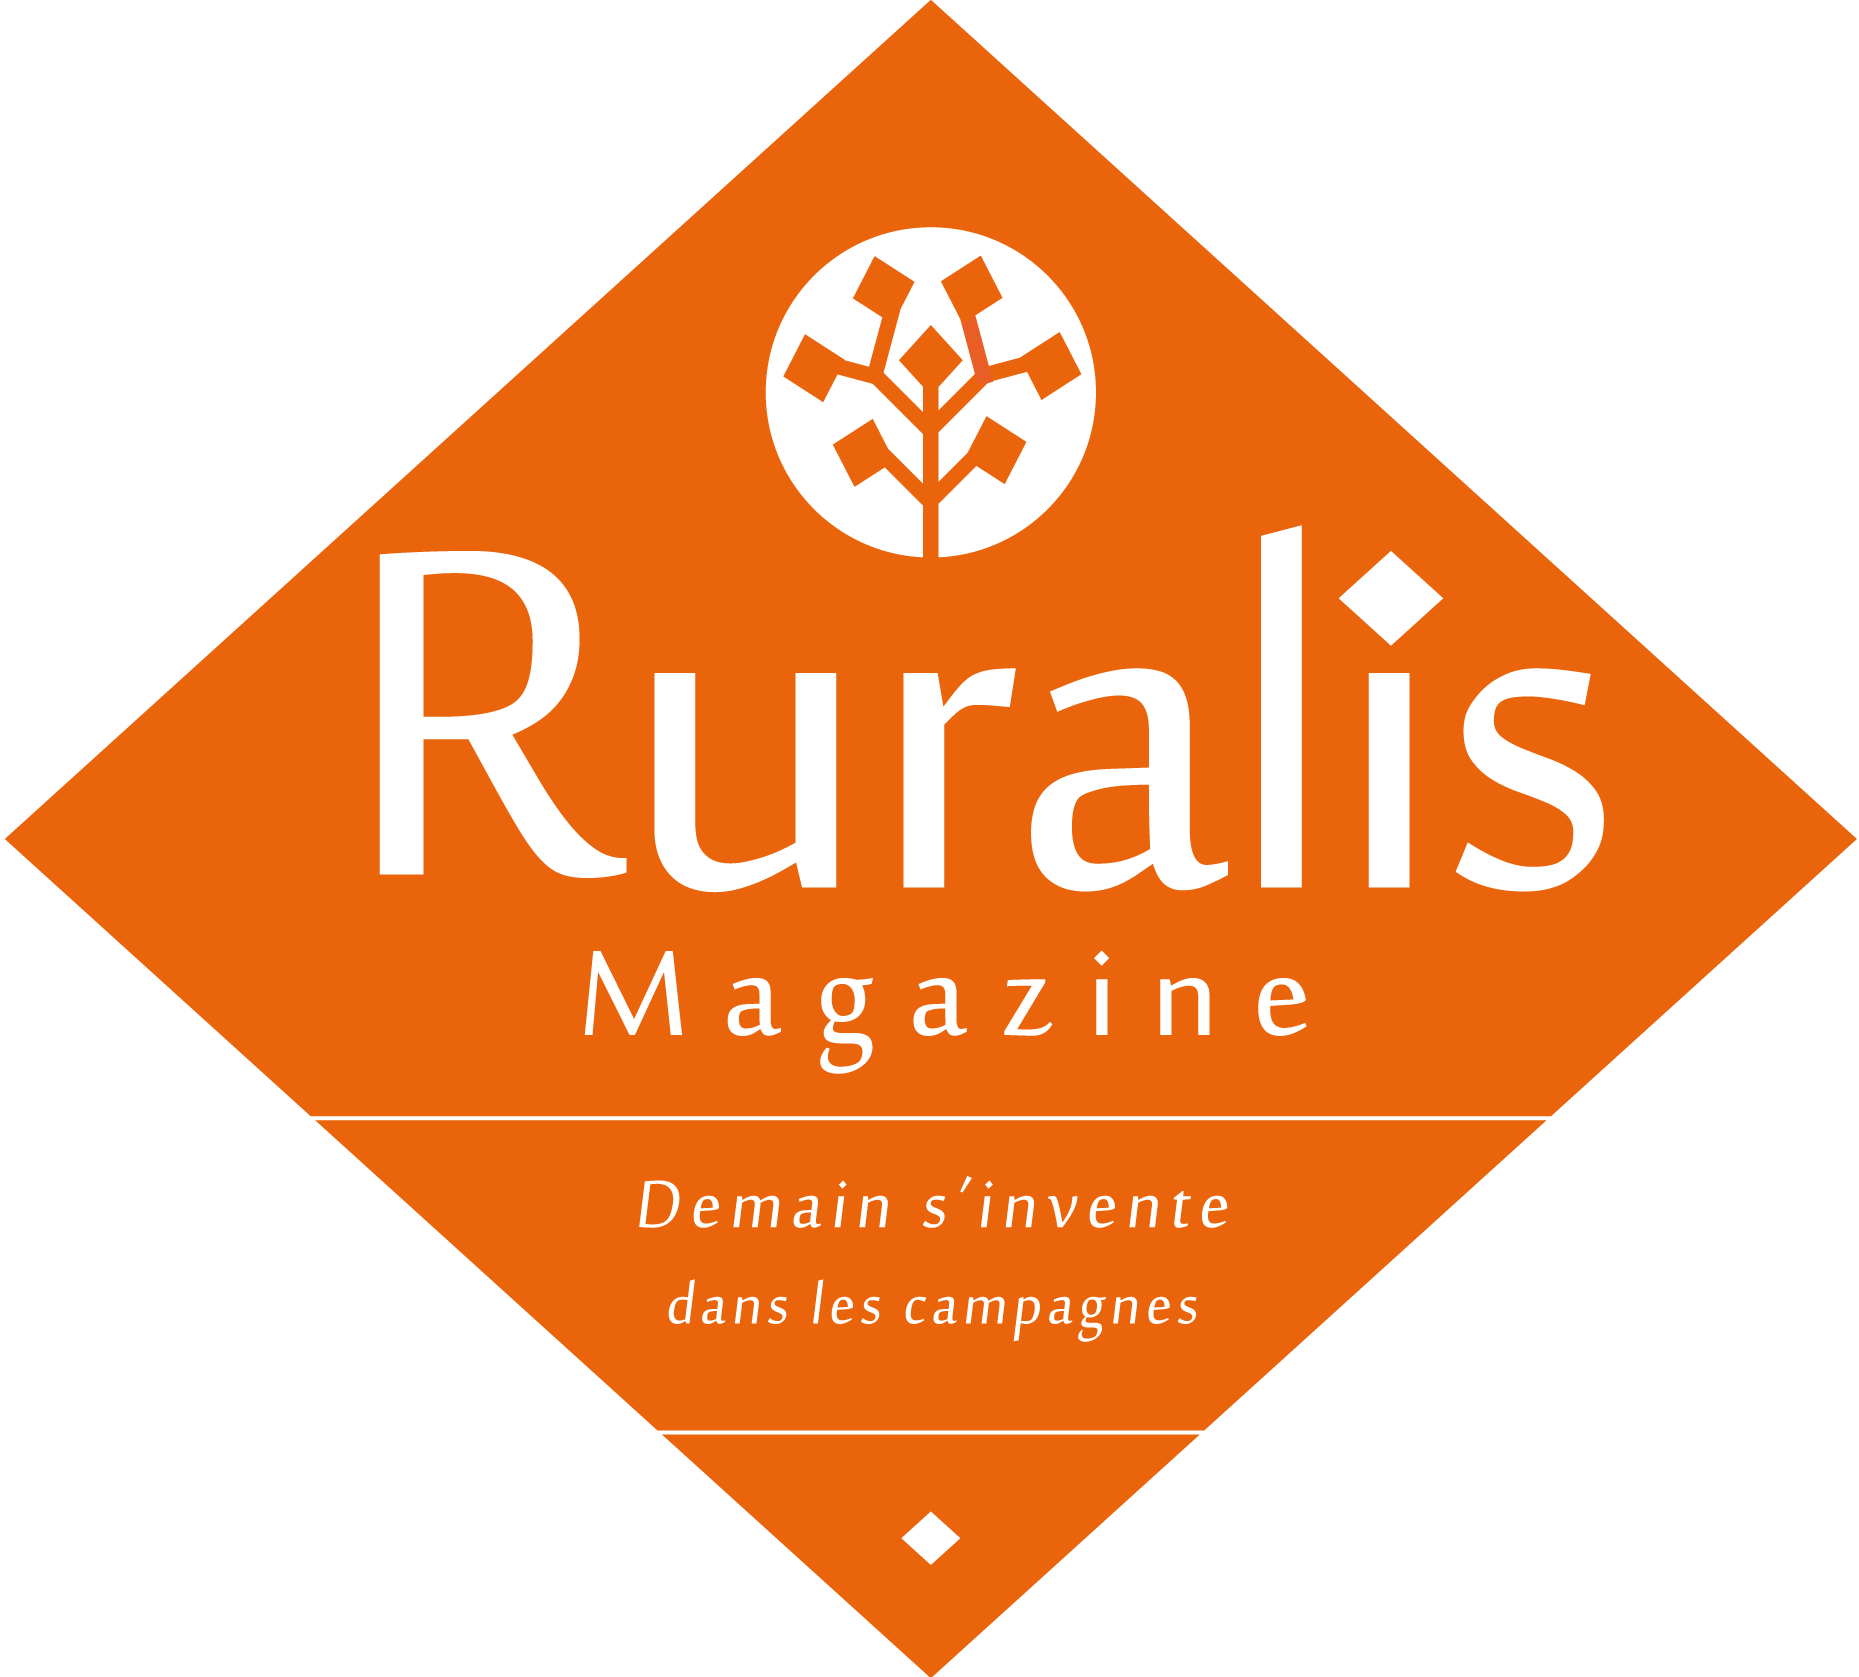 logo ruralis magazine